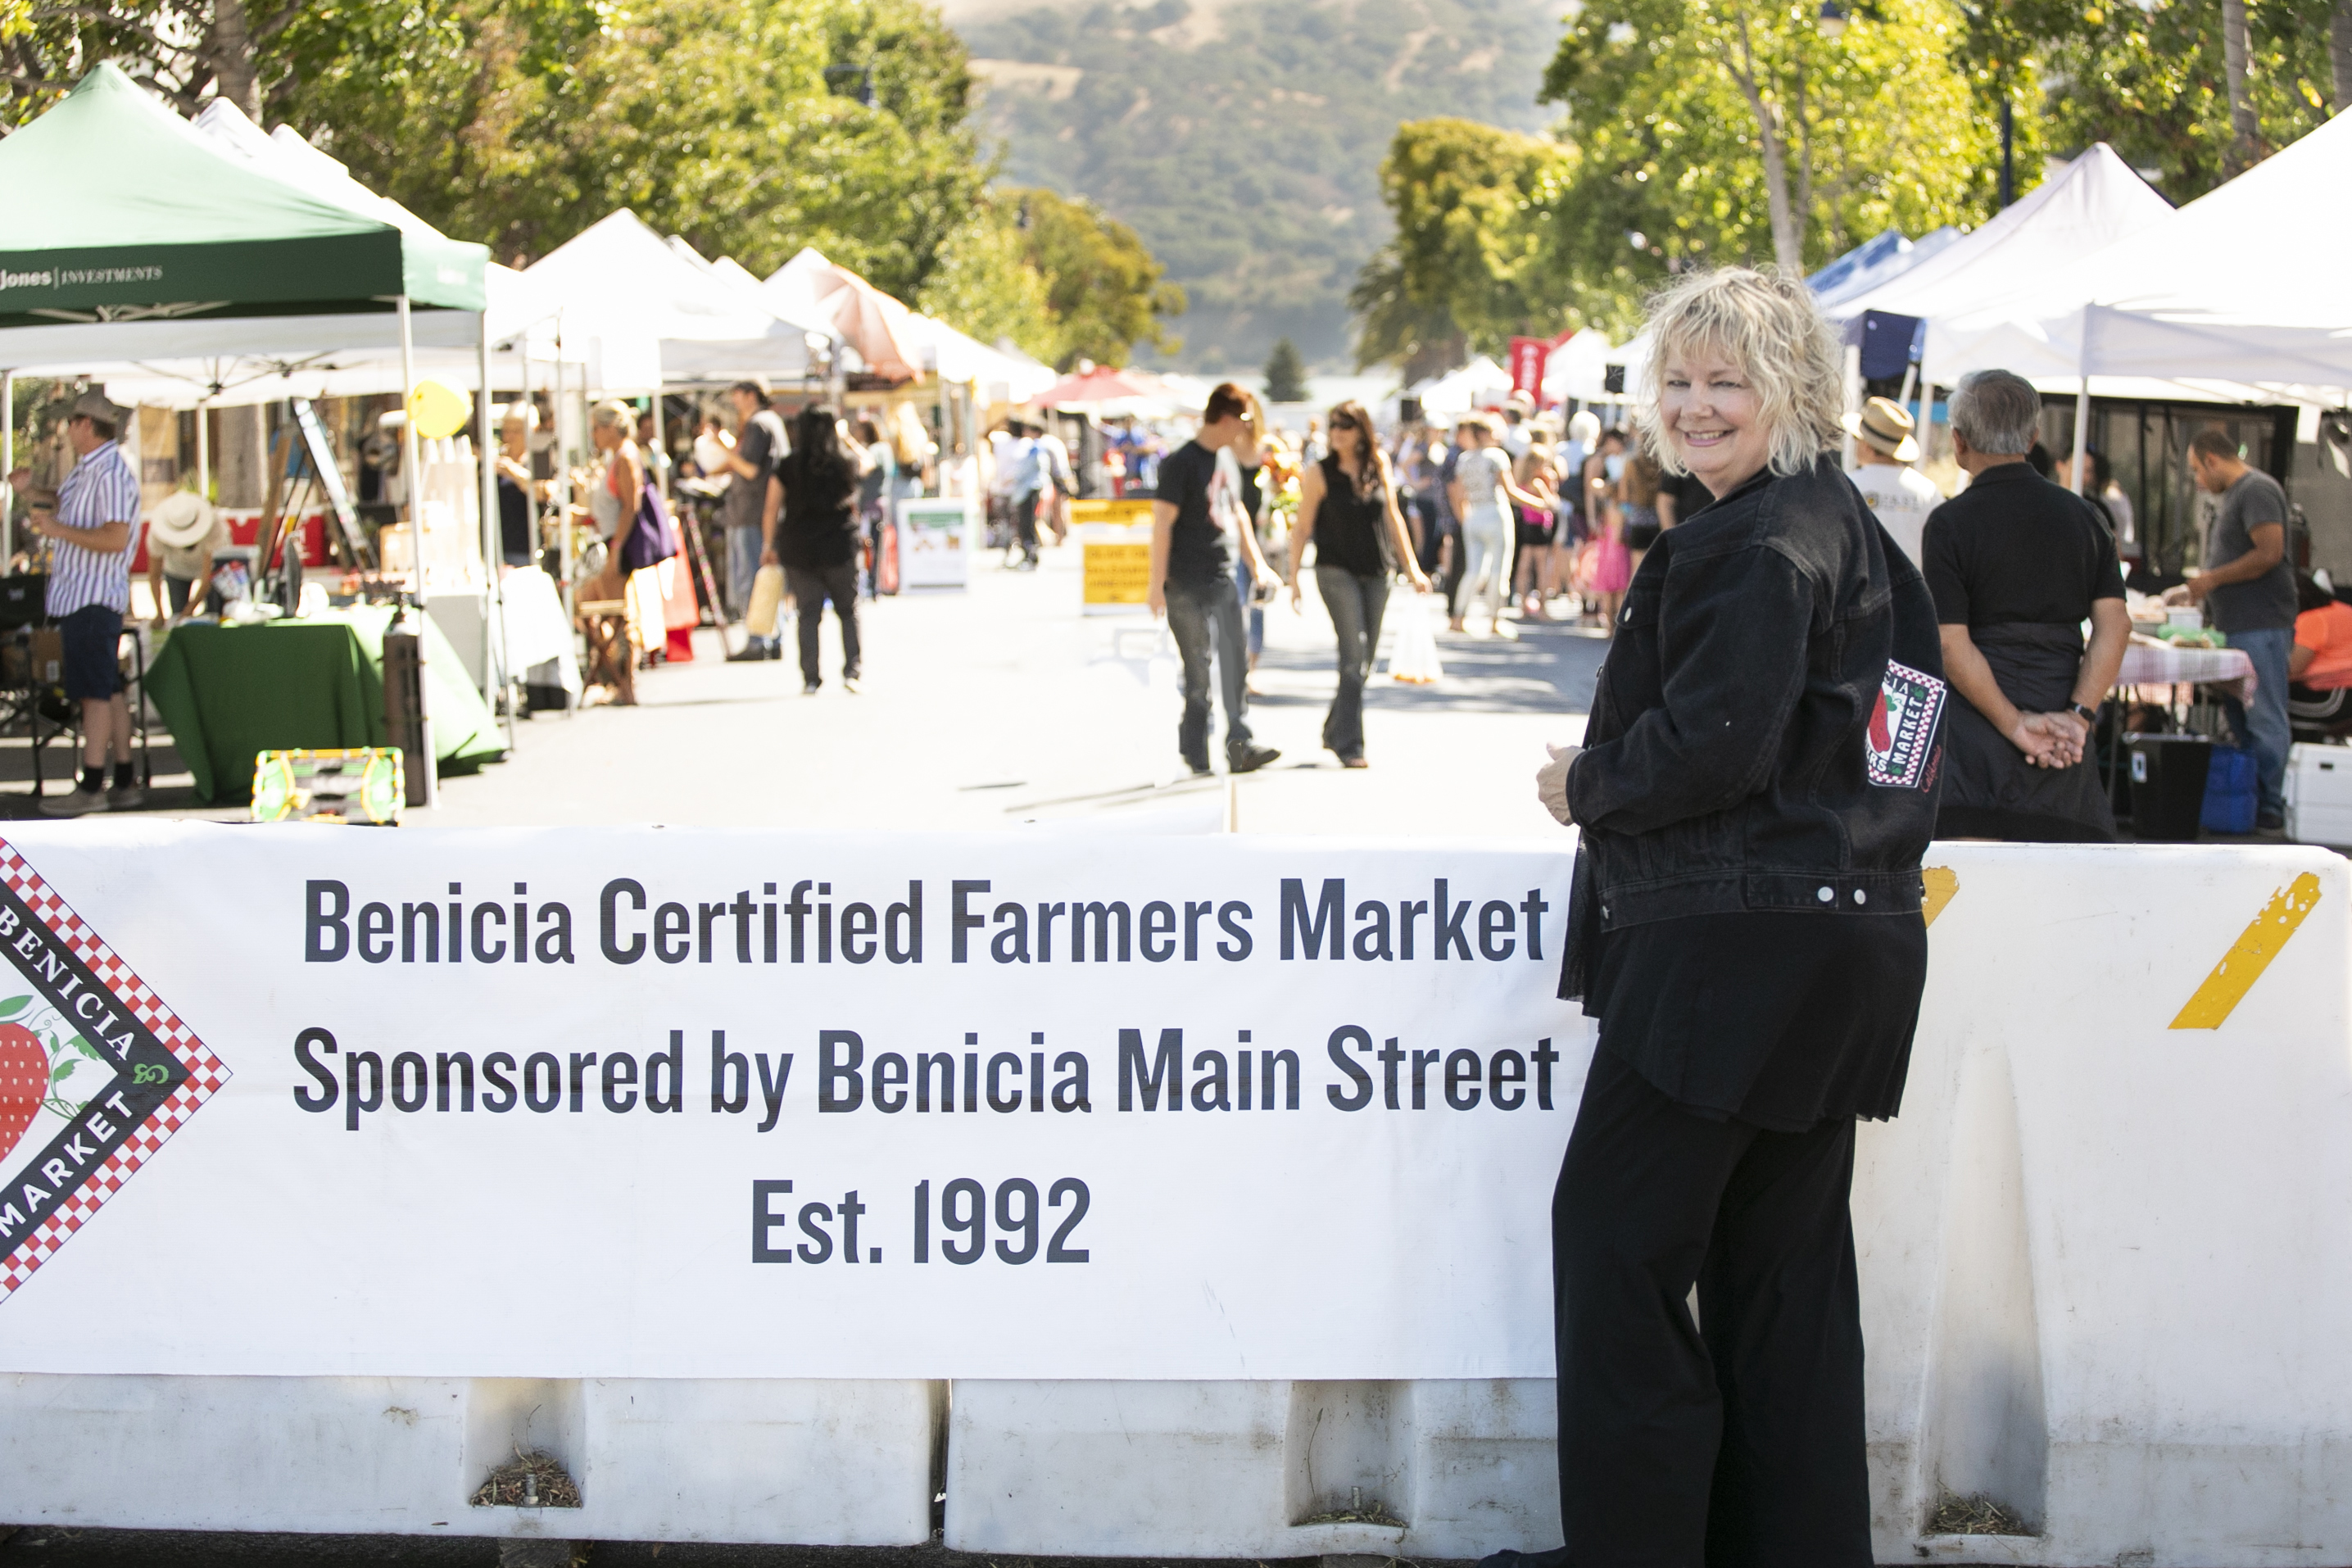 Benicia Certified Farmers Market Returns